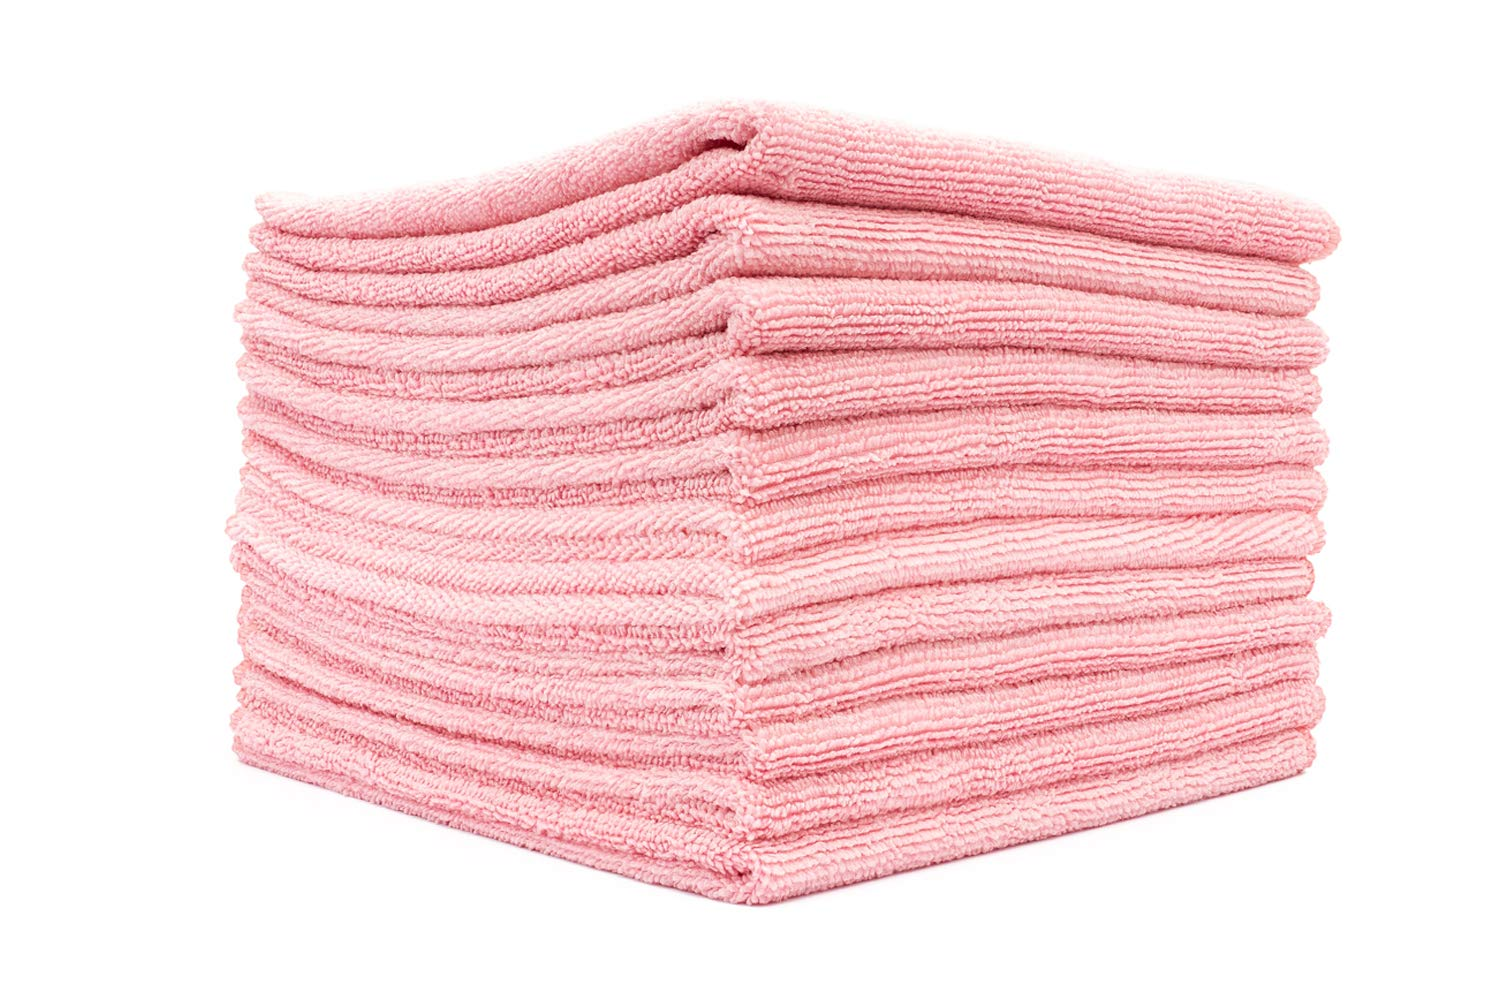 The Rag Company (12-Pack) 12 in. x 12 in. Commercial Grade All-Purpose Microfiber Highly Absorbent, LINT-Free, Streak-Free Cleaning Towels (Pink)